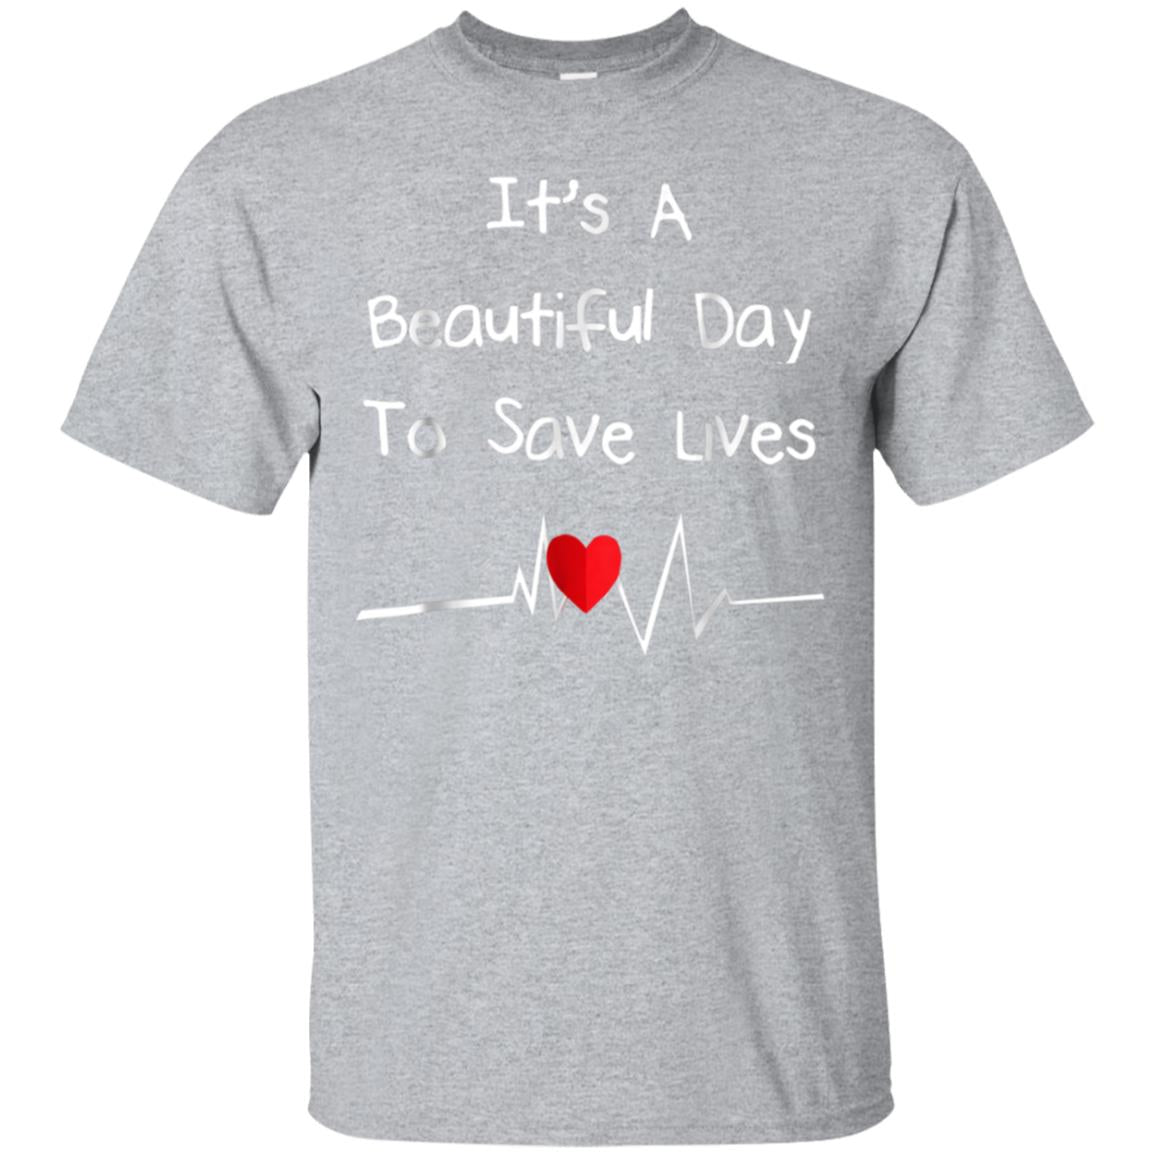 It's a beautiful day to save lives shirt 99promocode